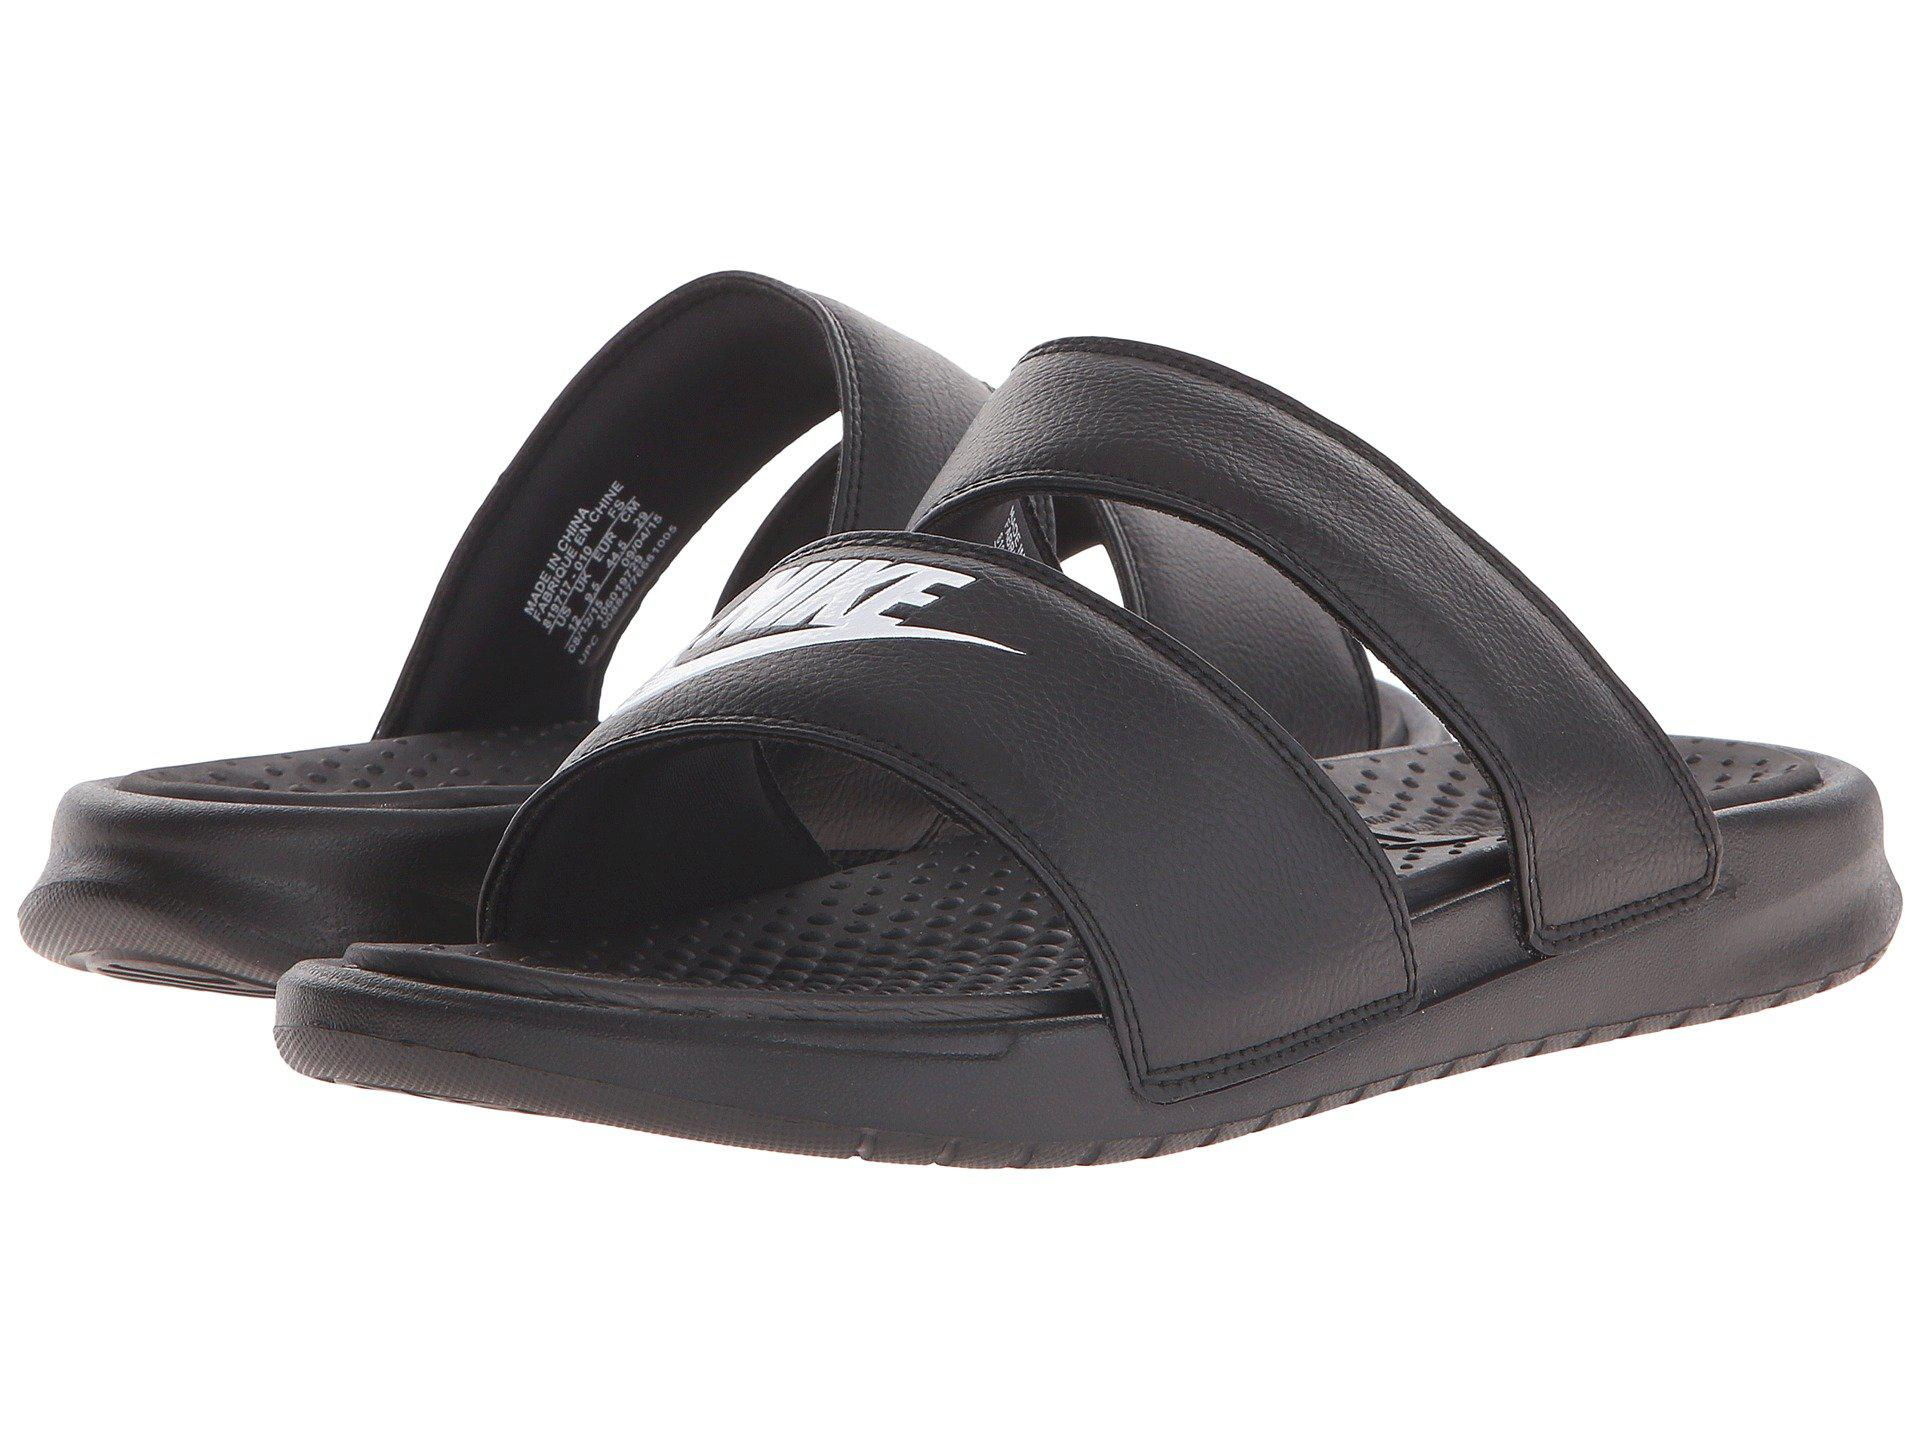 66044b4a2ba Lyst - Nike Benassi Duo Ultra Slide (black white) Women s Slide ...